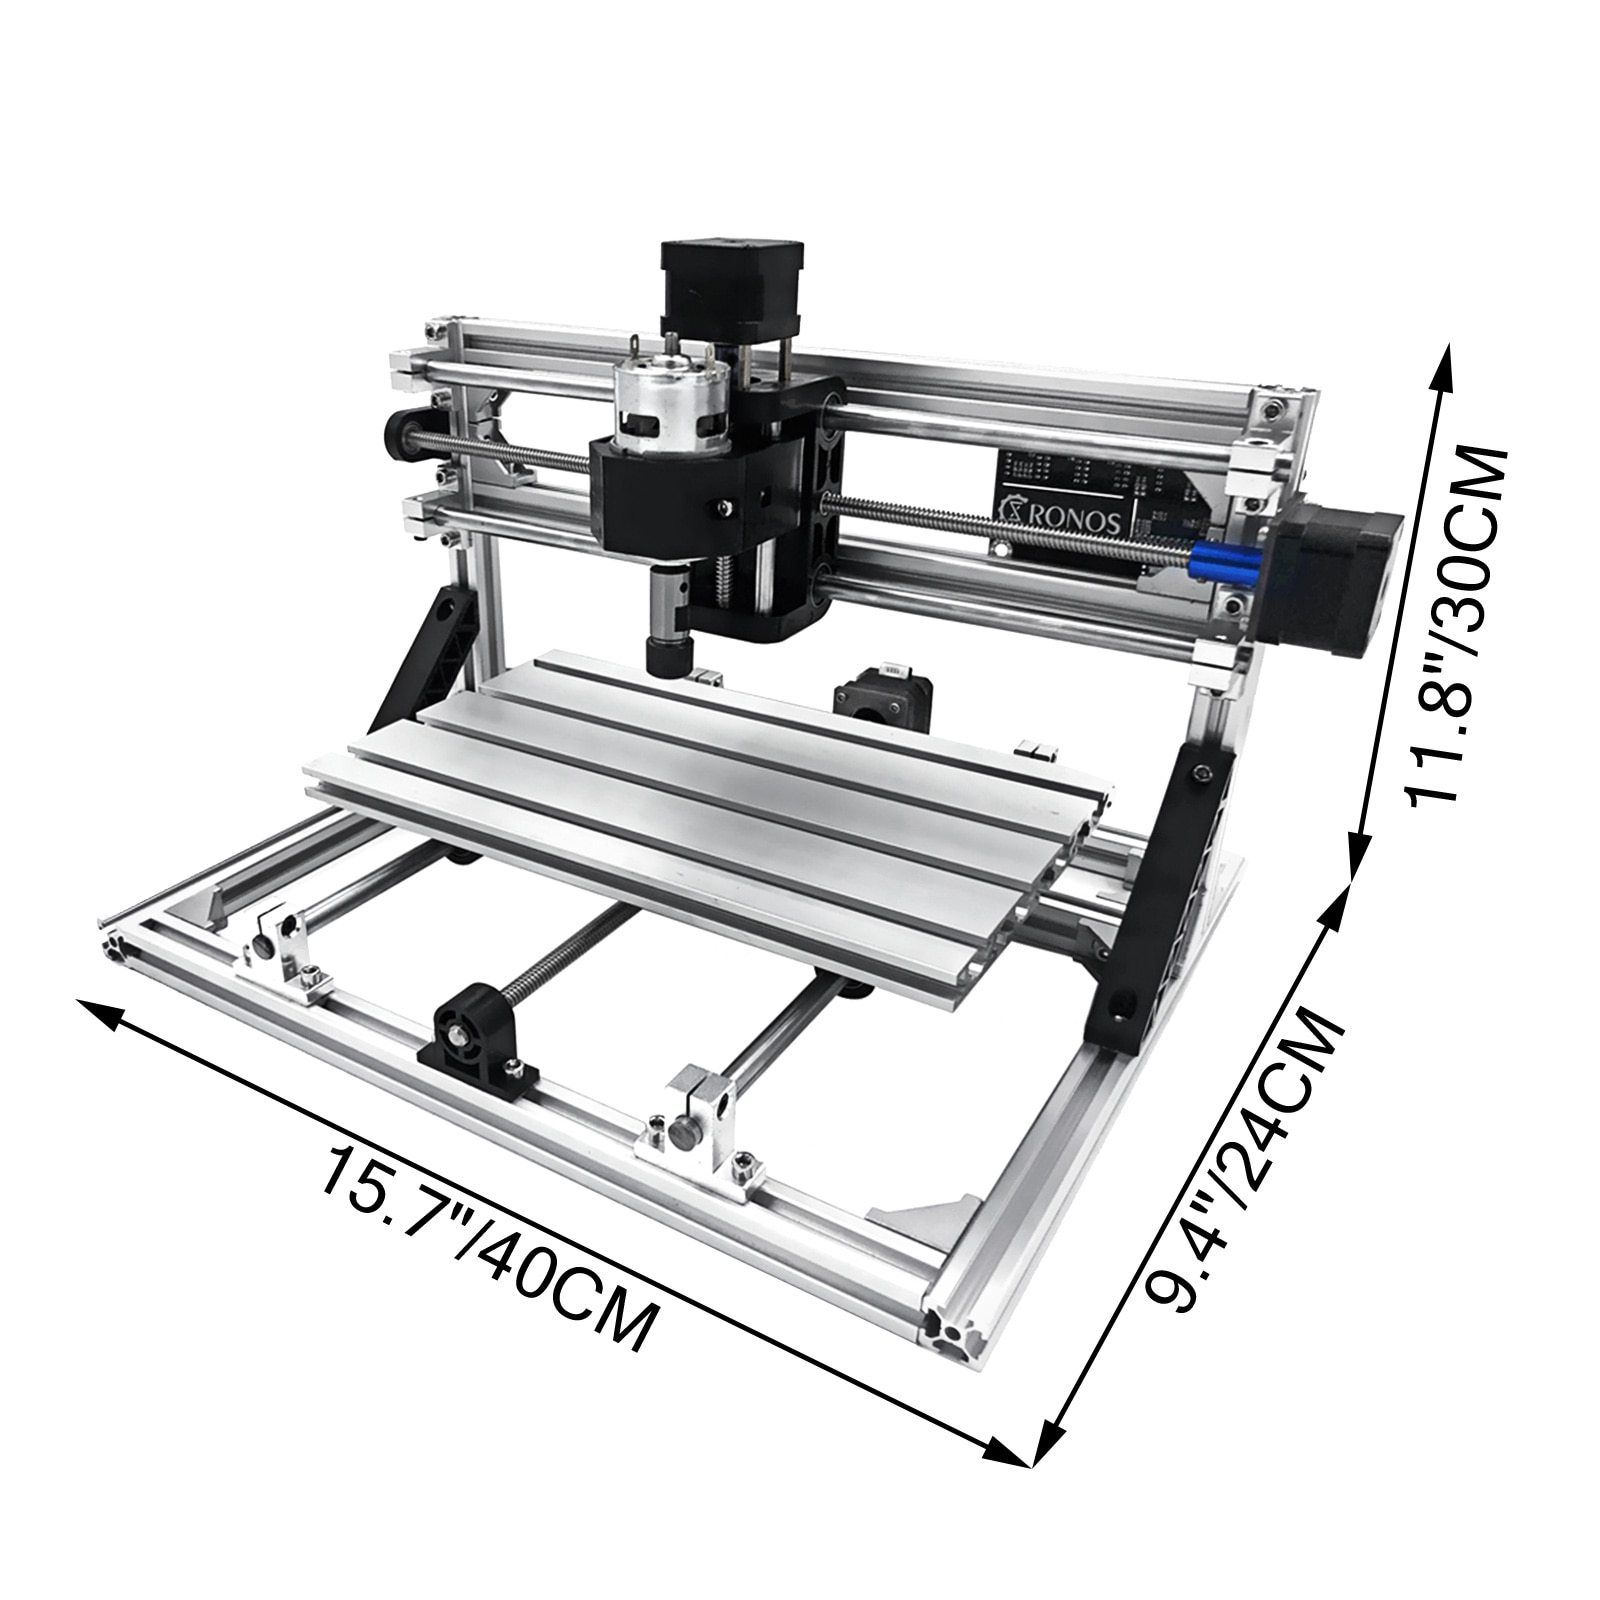 VEVOR 3 Axis CNC 3018 Laser Engraver GRBL Control Molding Milling Machine USB Port with ER11 for DIY PVC PCB Acrylic Wood Router enlarge